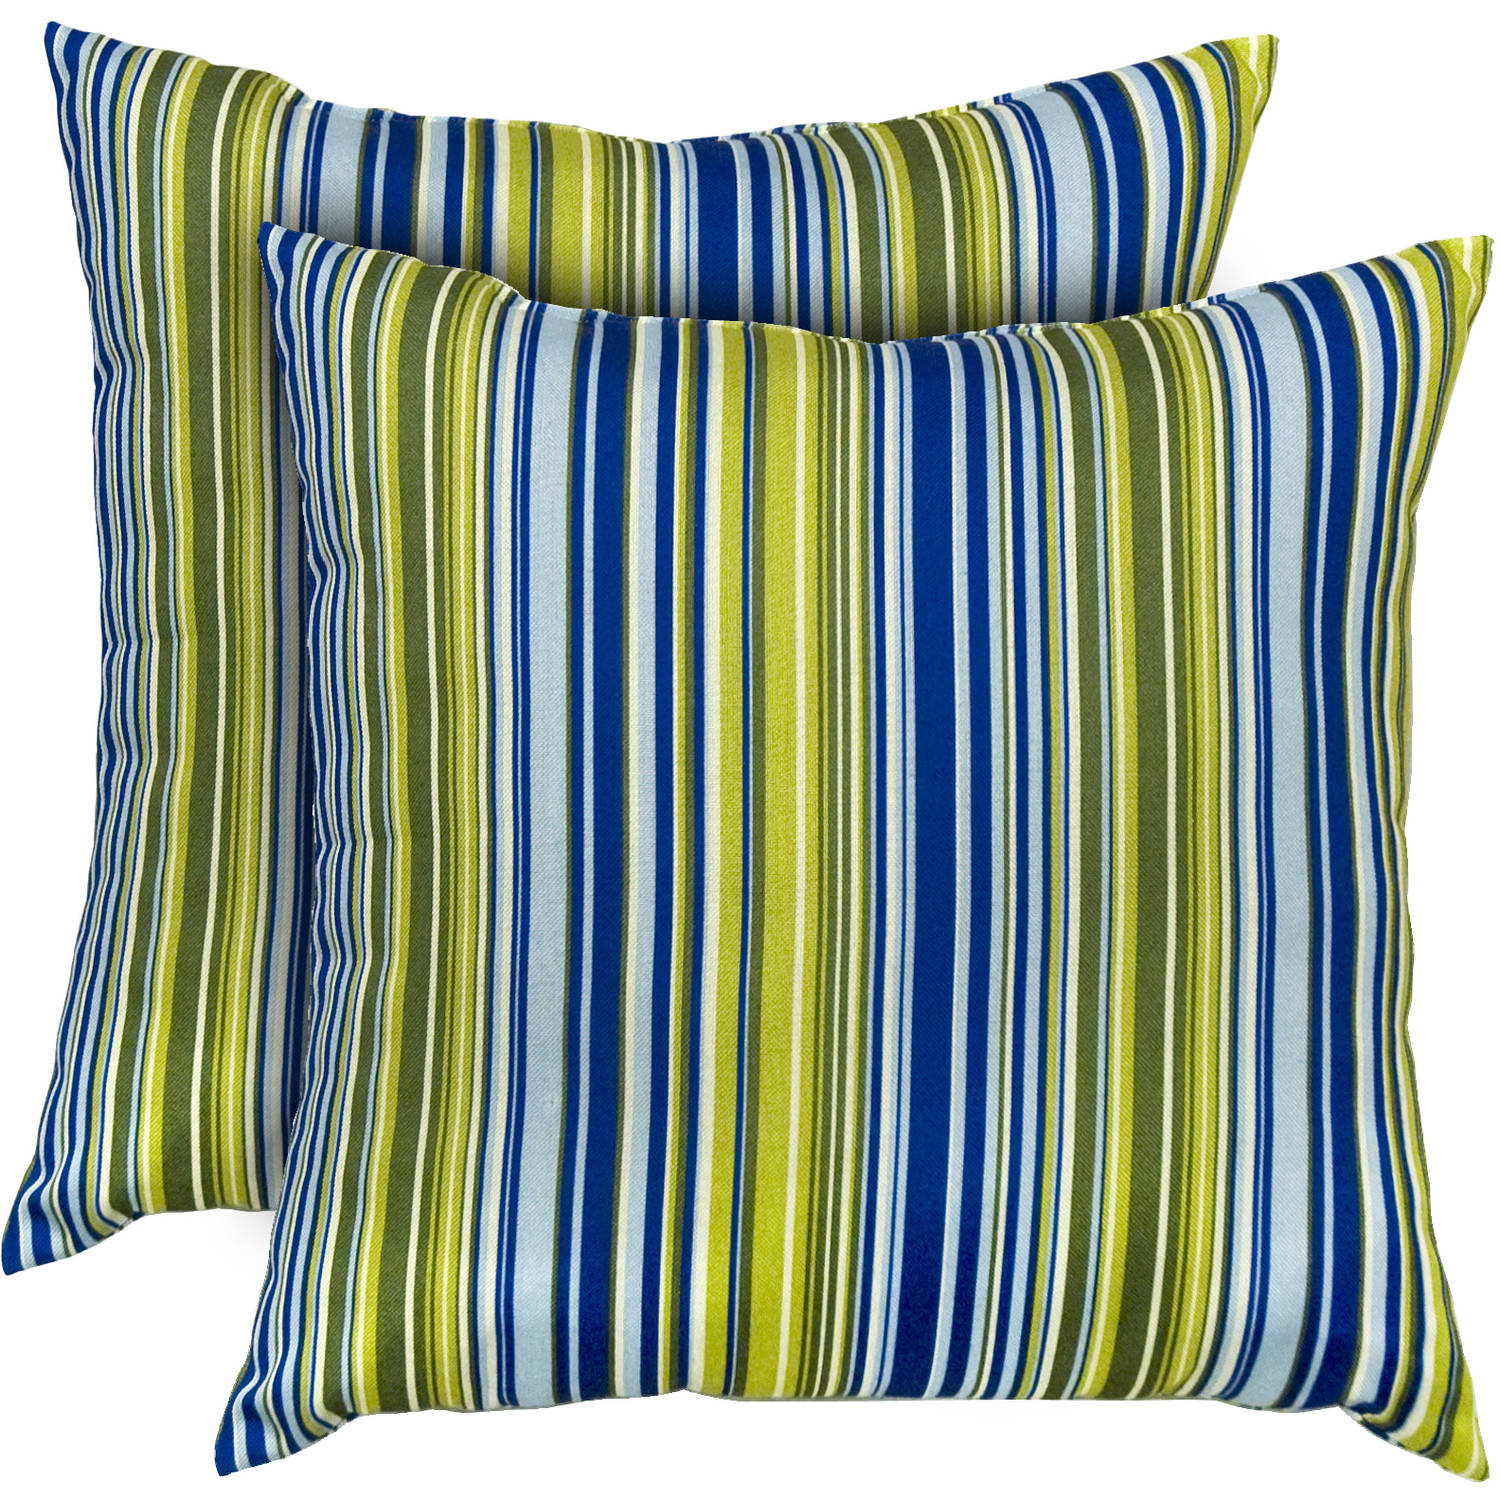 Greendale Home Fashions Outdoor Accent Pillows, Set Of 2, Indigo    Walmart.com